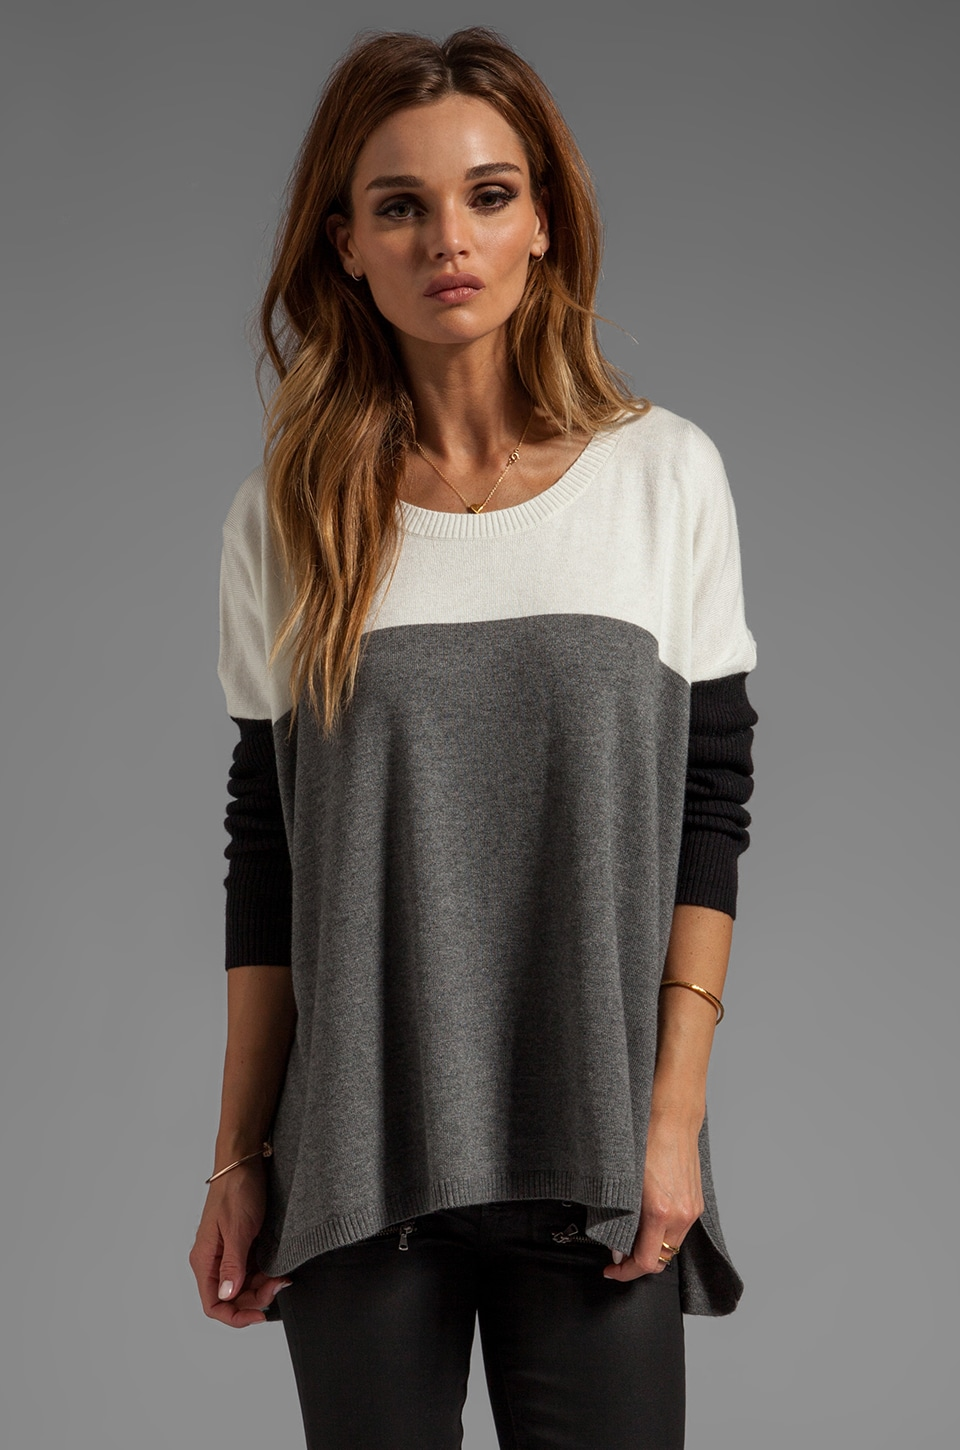 Central Park West Barrington Boxy Sweater in Ivory